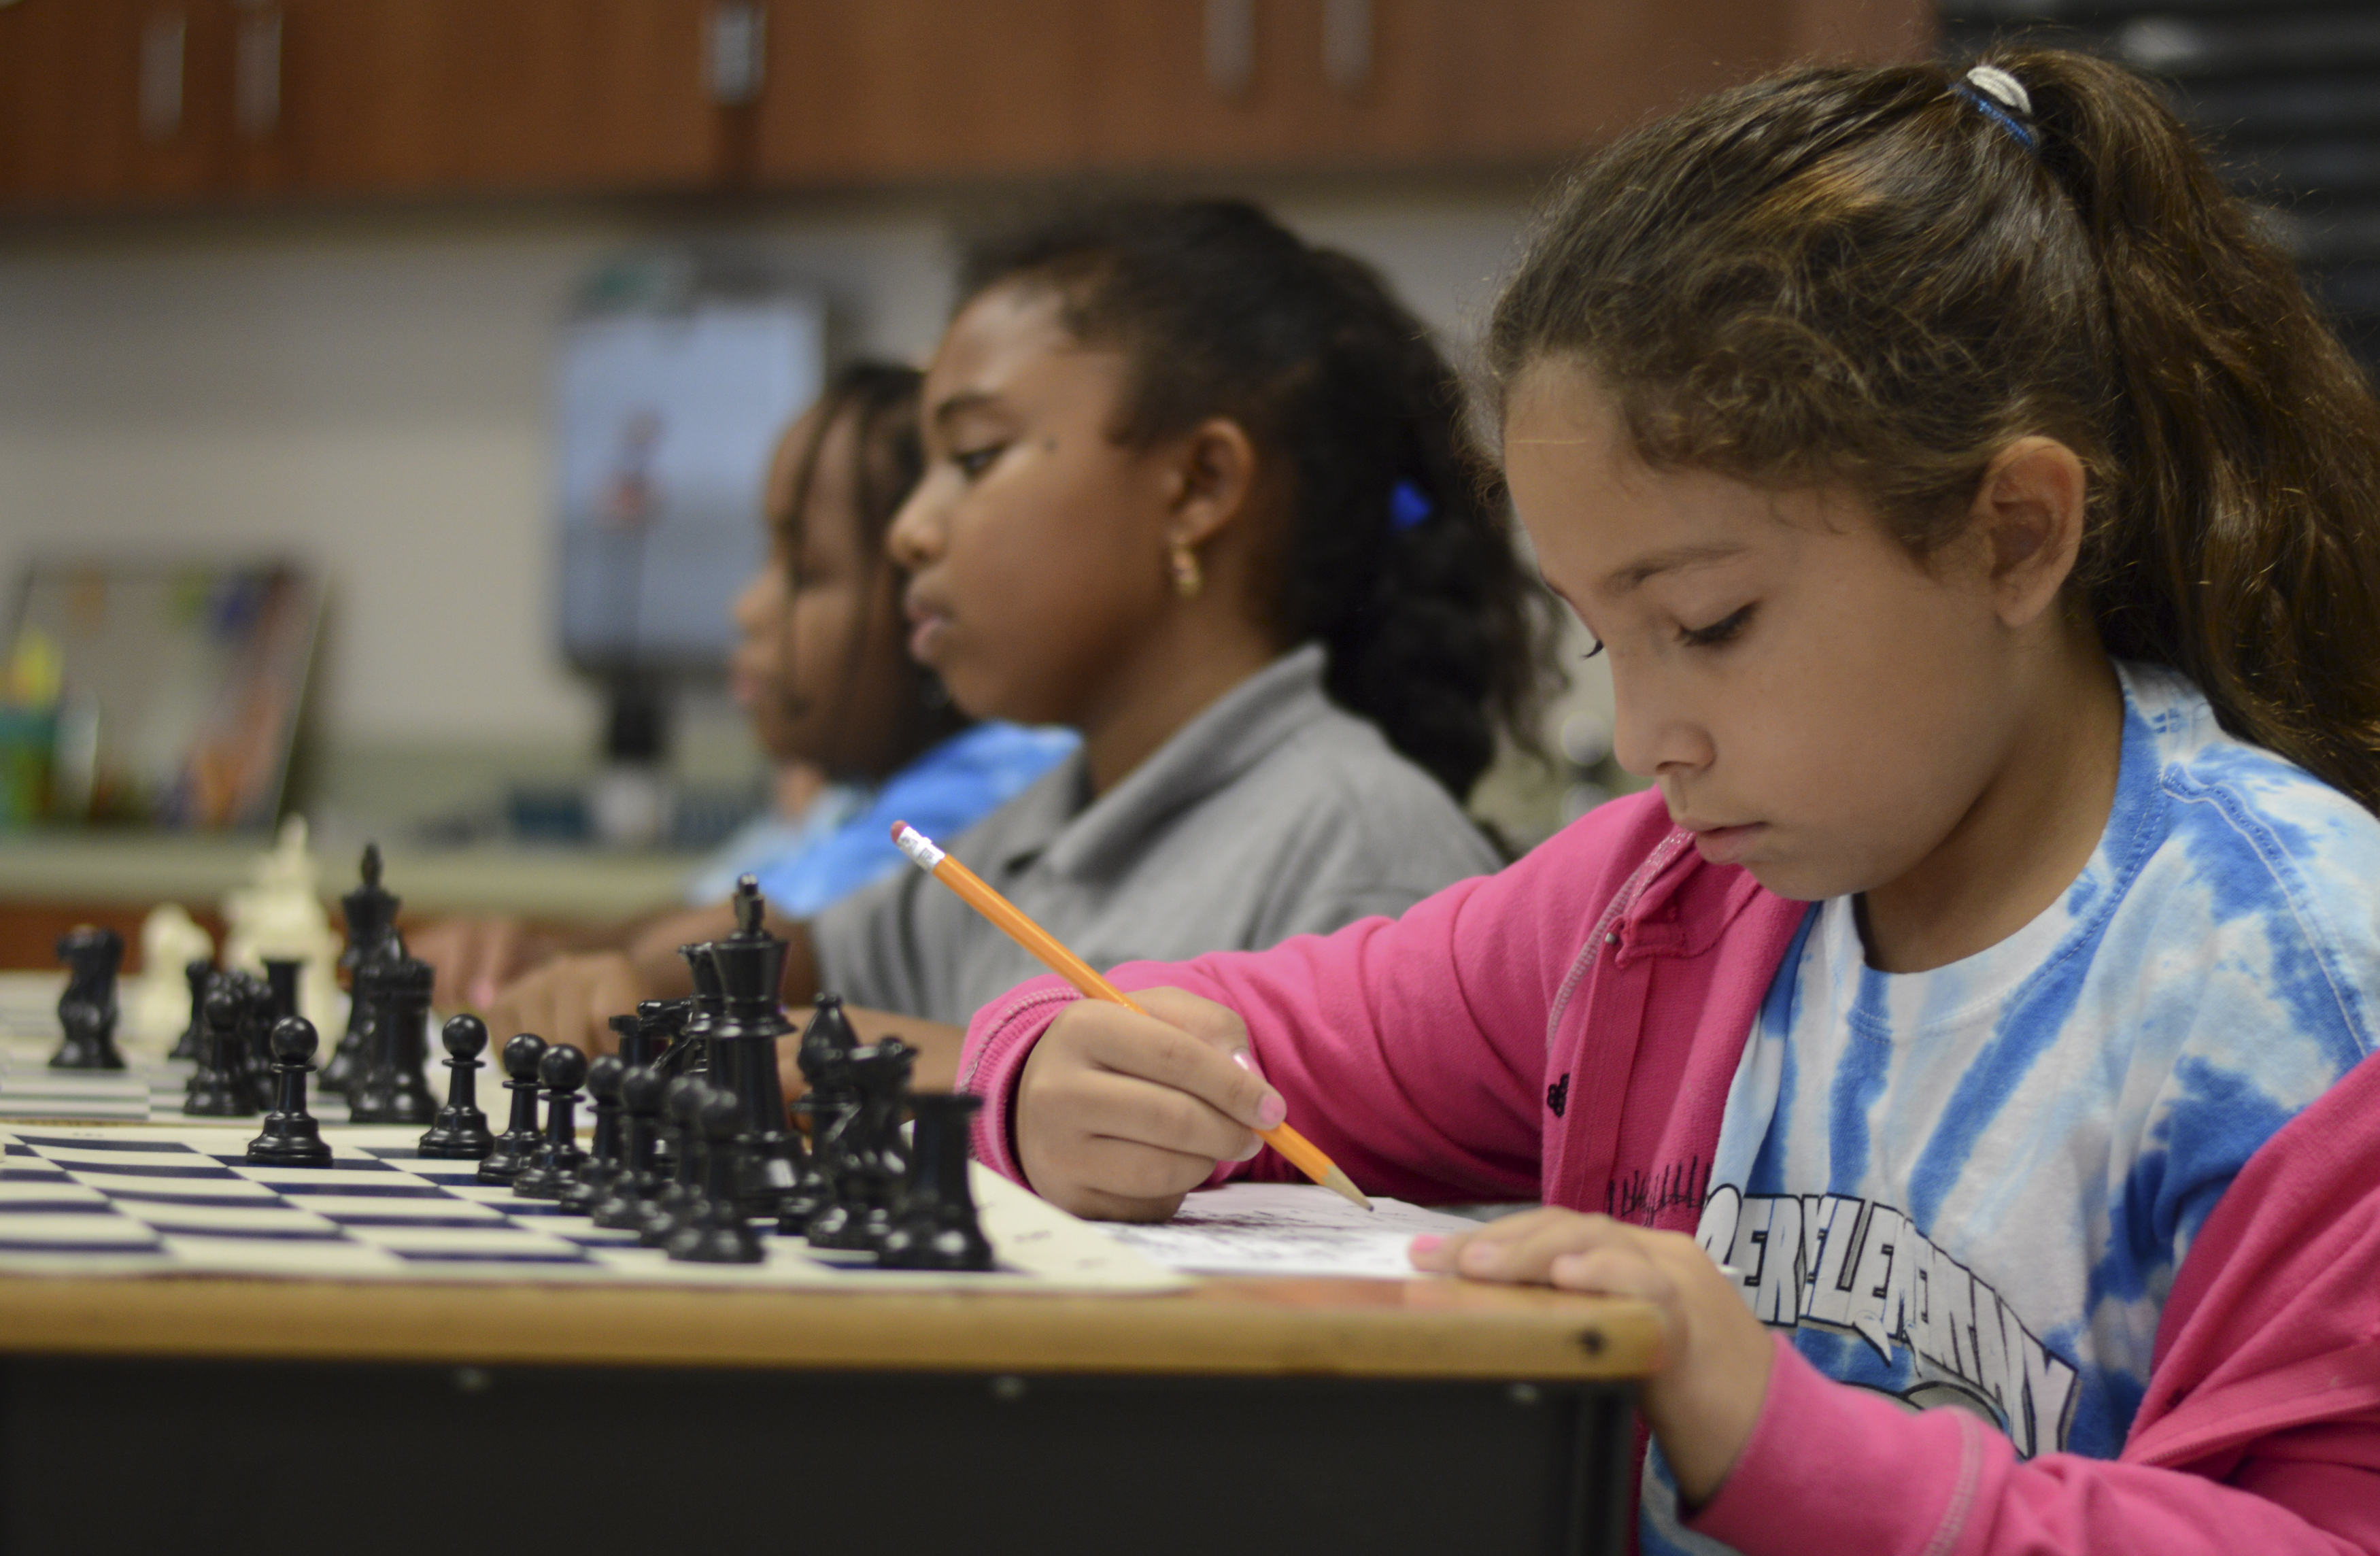 Hailey Rodelo participates in a chess-geography lesson at Discovery Elementary School in Sunrise, Florida